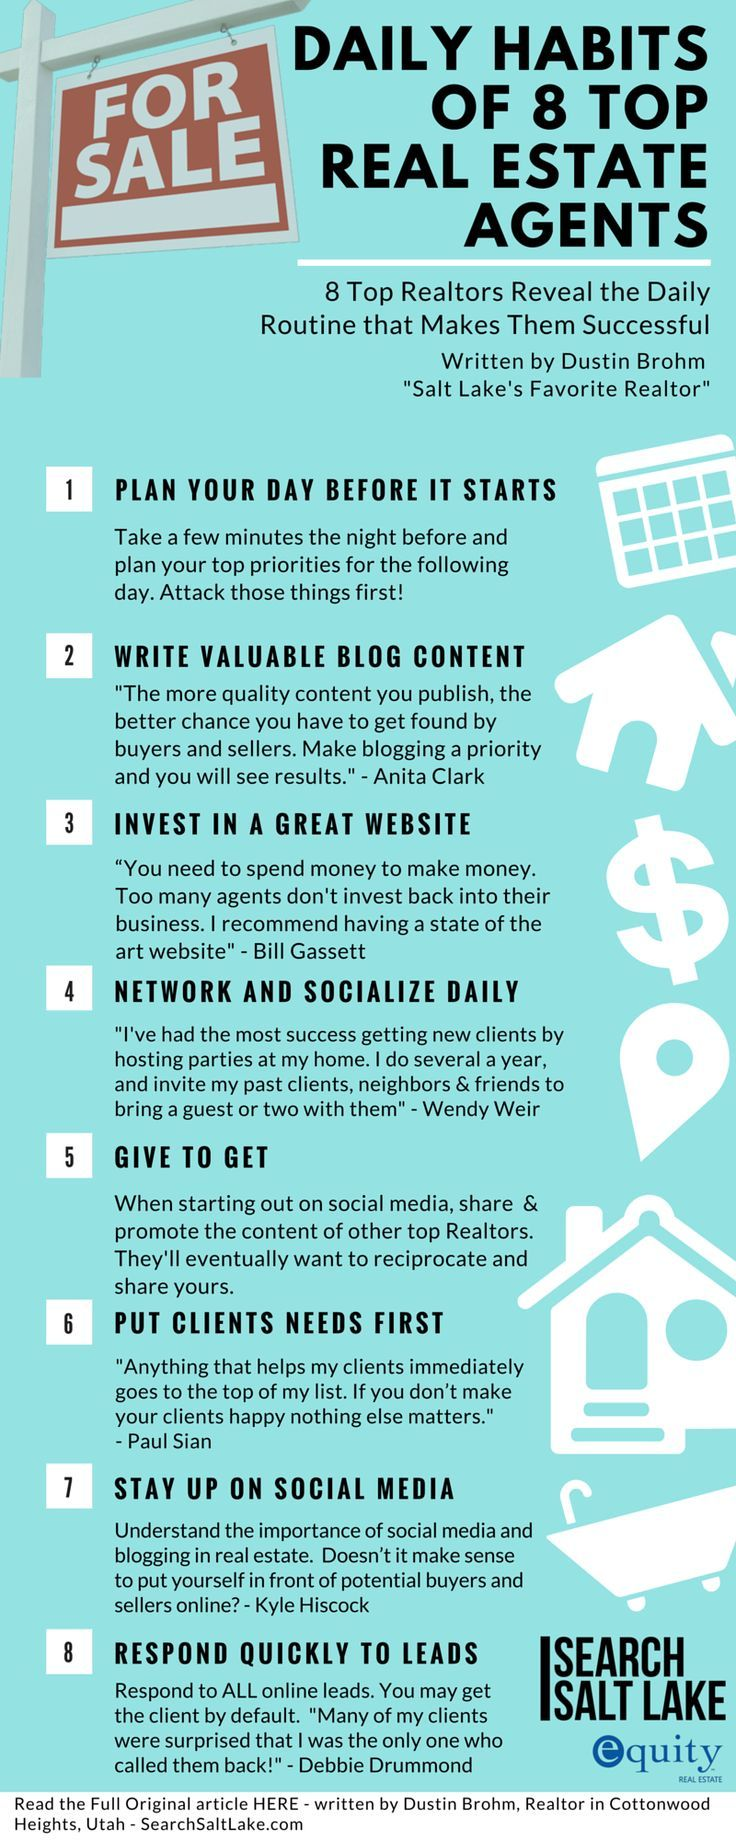 Top Real Estate Agents Reveal the Daily Routines that Makes Them So Successful. Why are some agents successful, and other real estate agents unsuccessful?